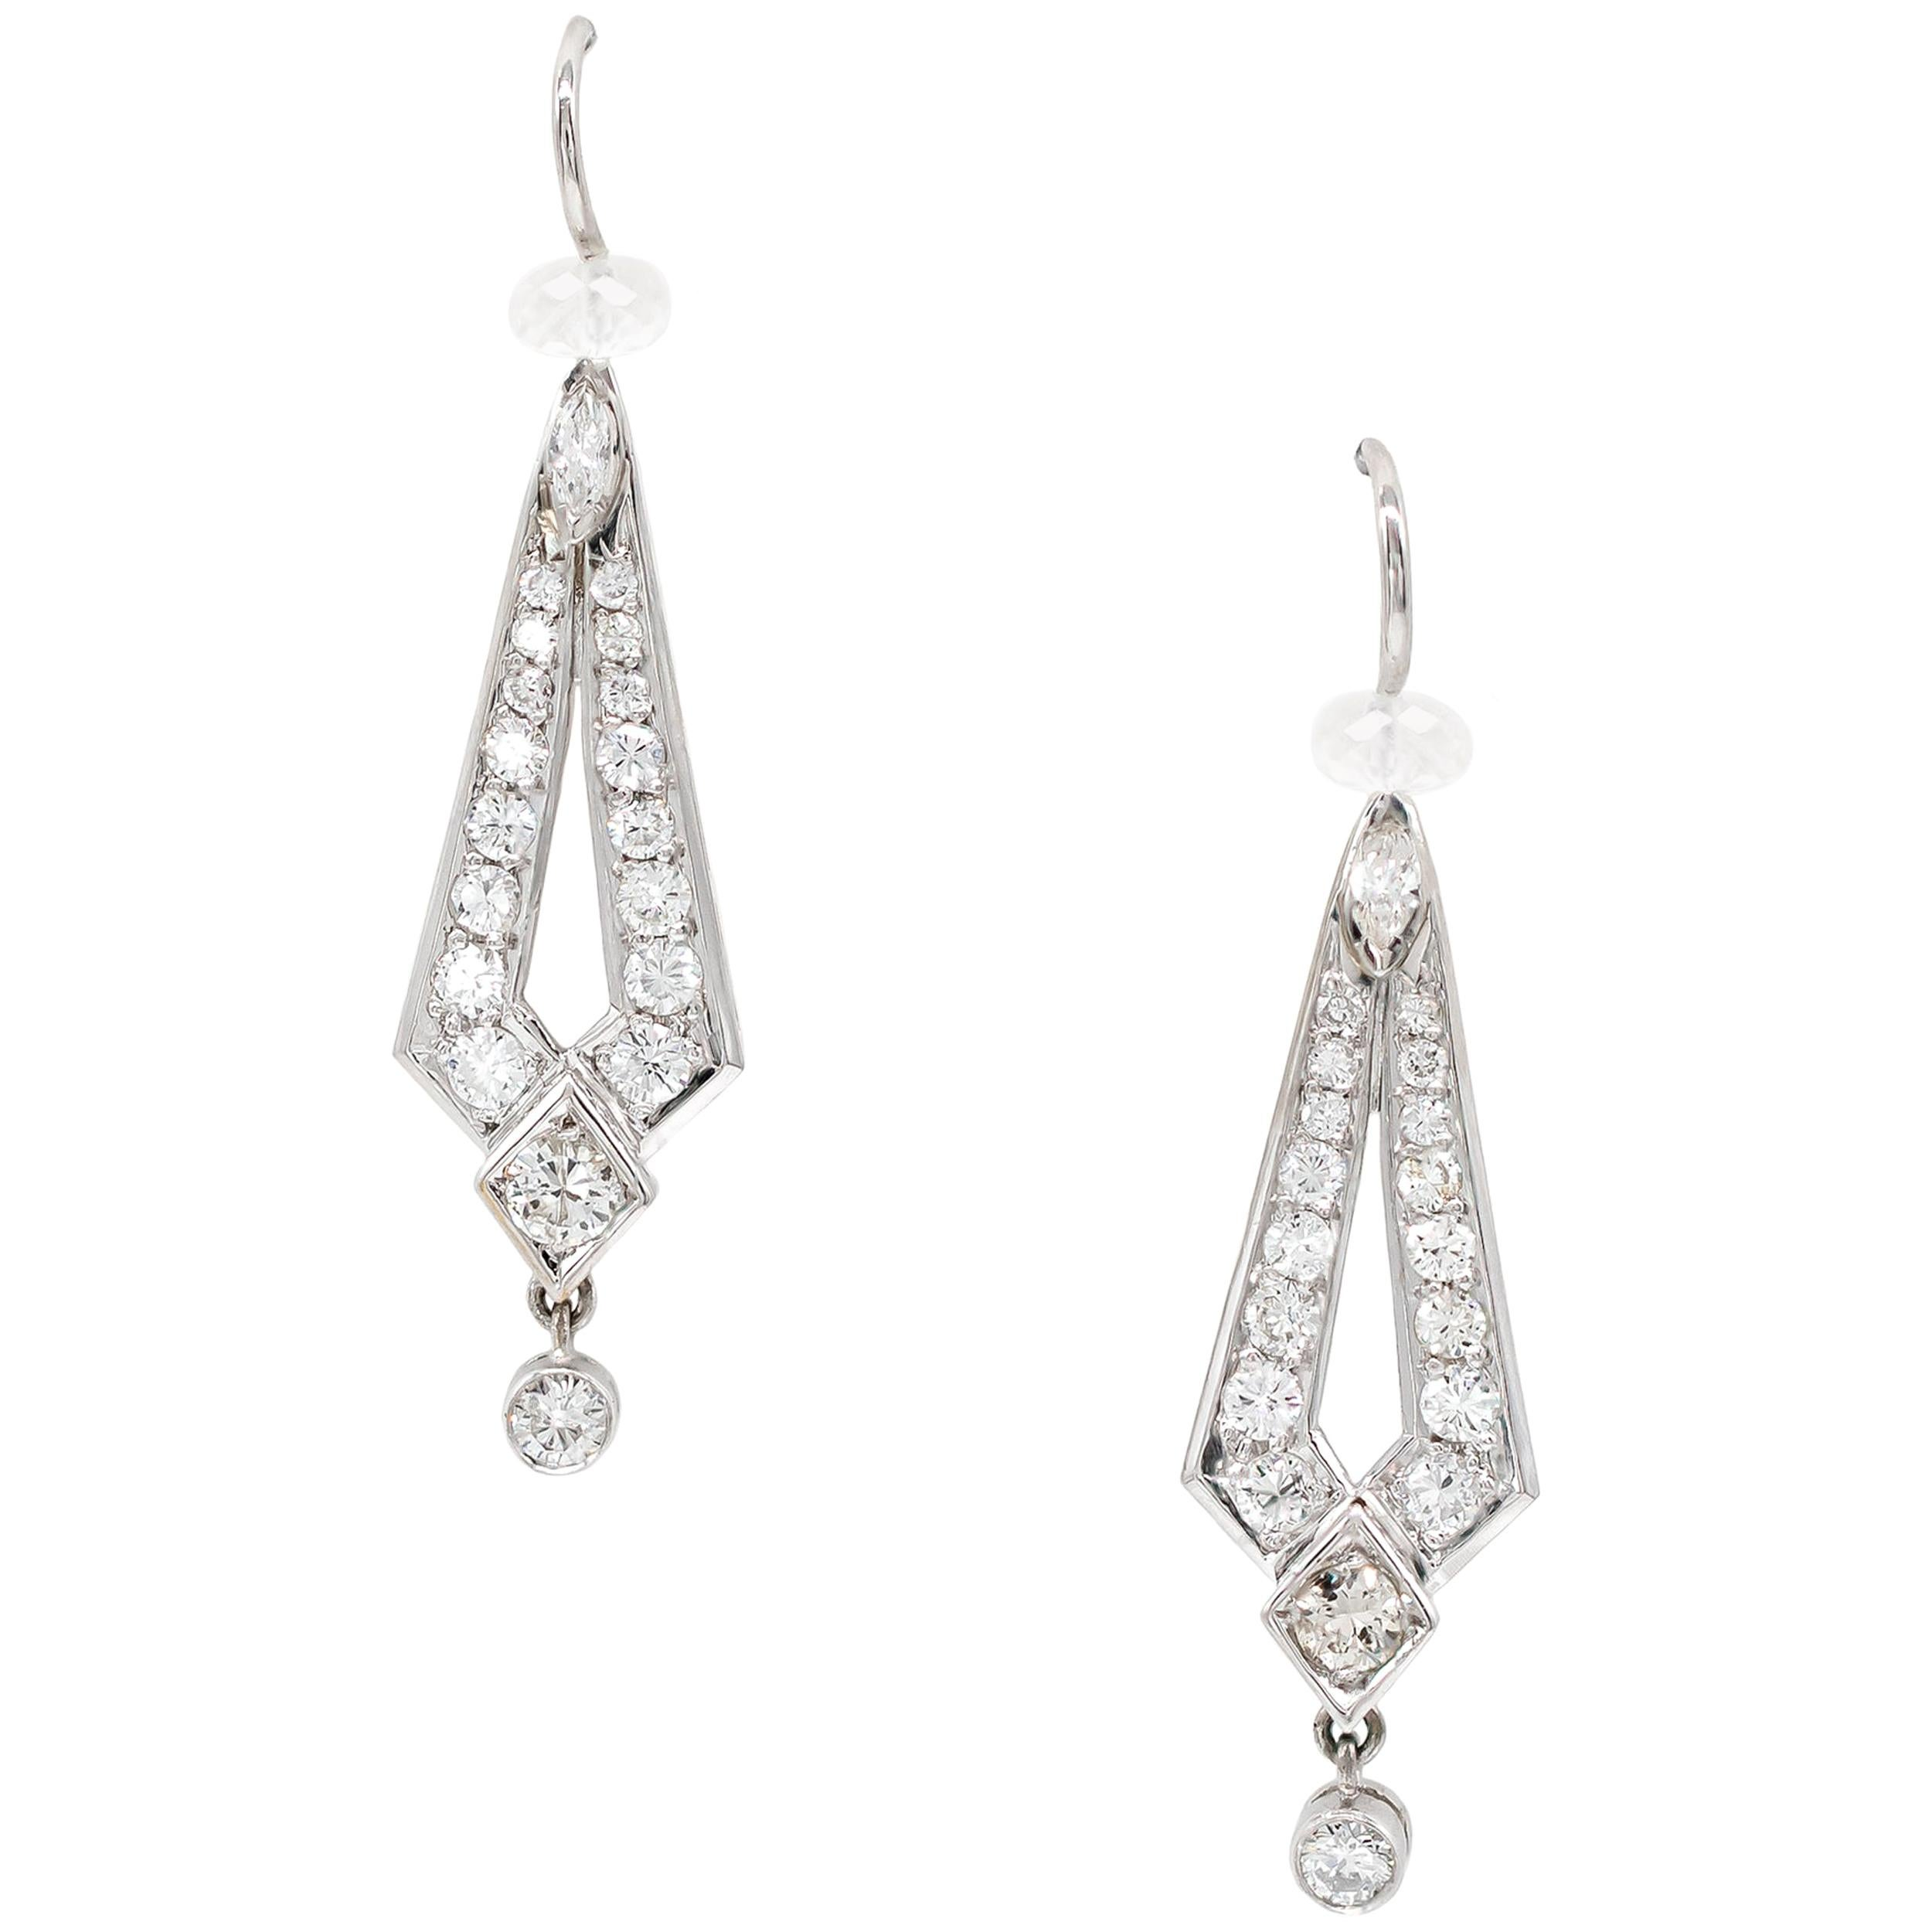 1.2 Carats Moonstone and Diamond Earrings Set in Platinum